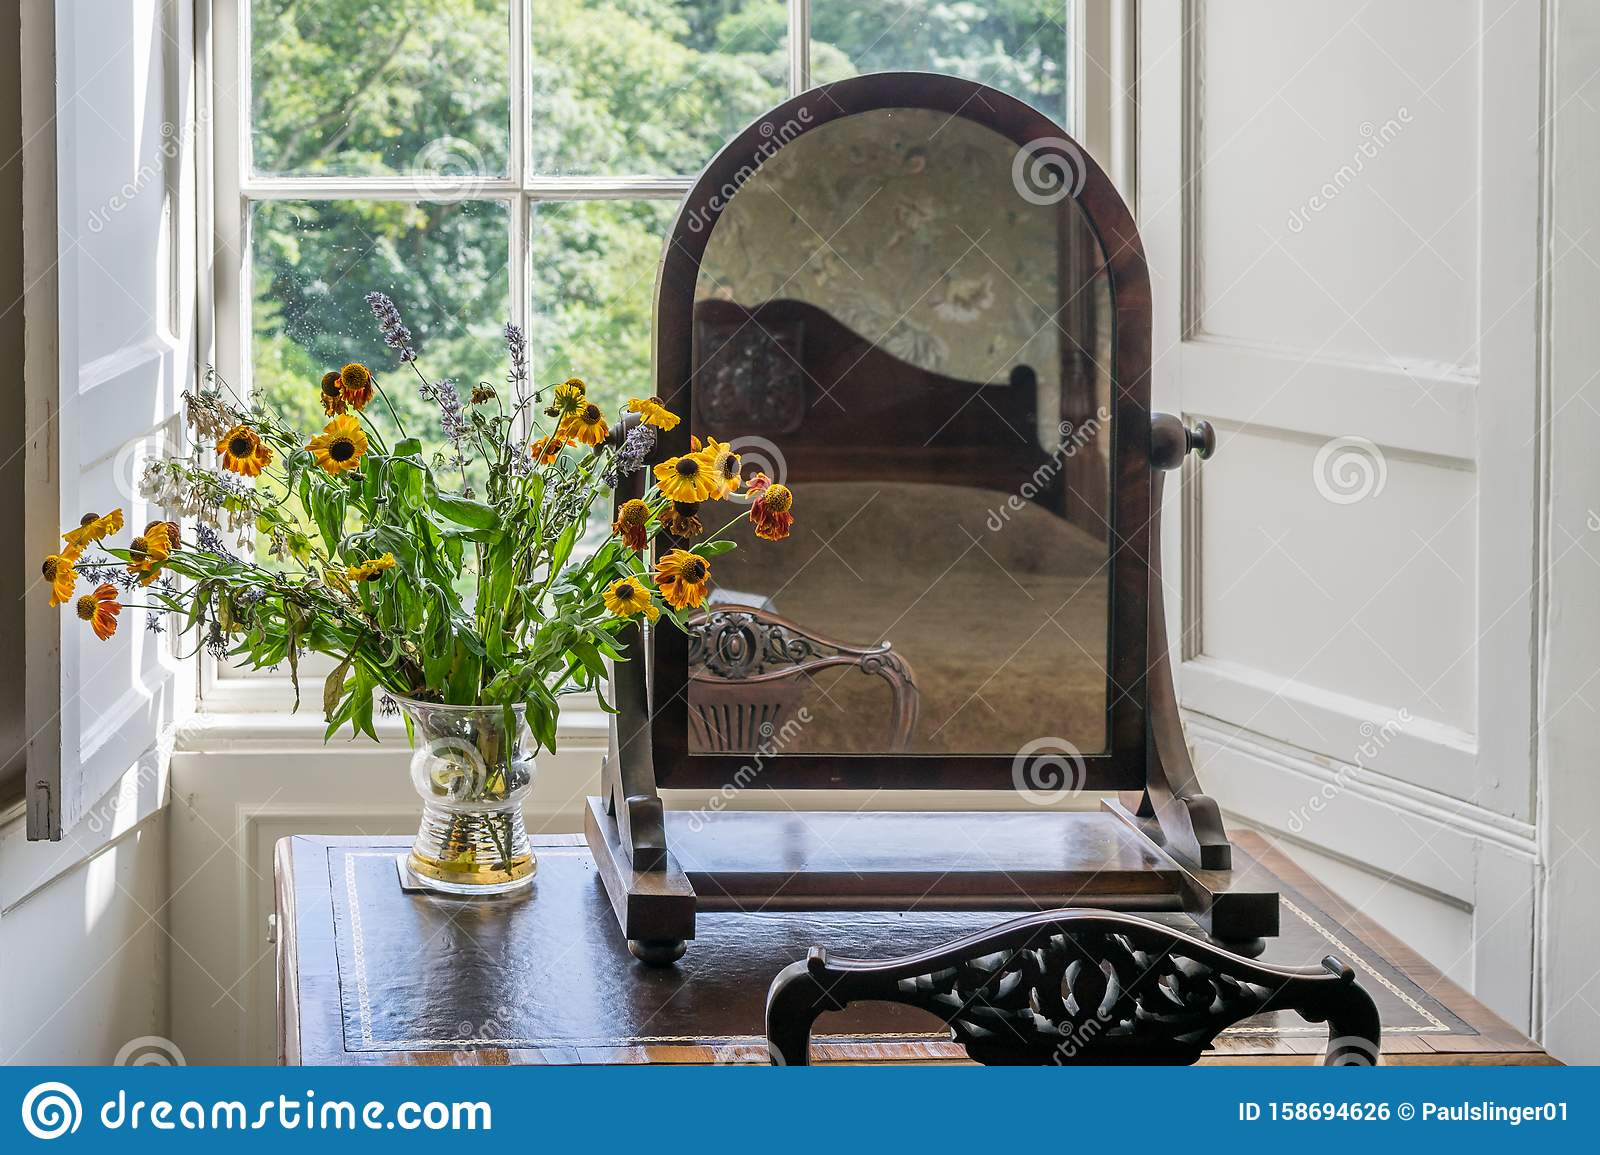 A View Of A Table Dresser With Chair And Mirror A Vase With Flowers In A Bay Window Area An Art Decor Scene Stock Photo Image Of Island Scene 158694626